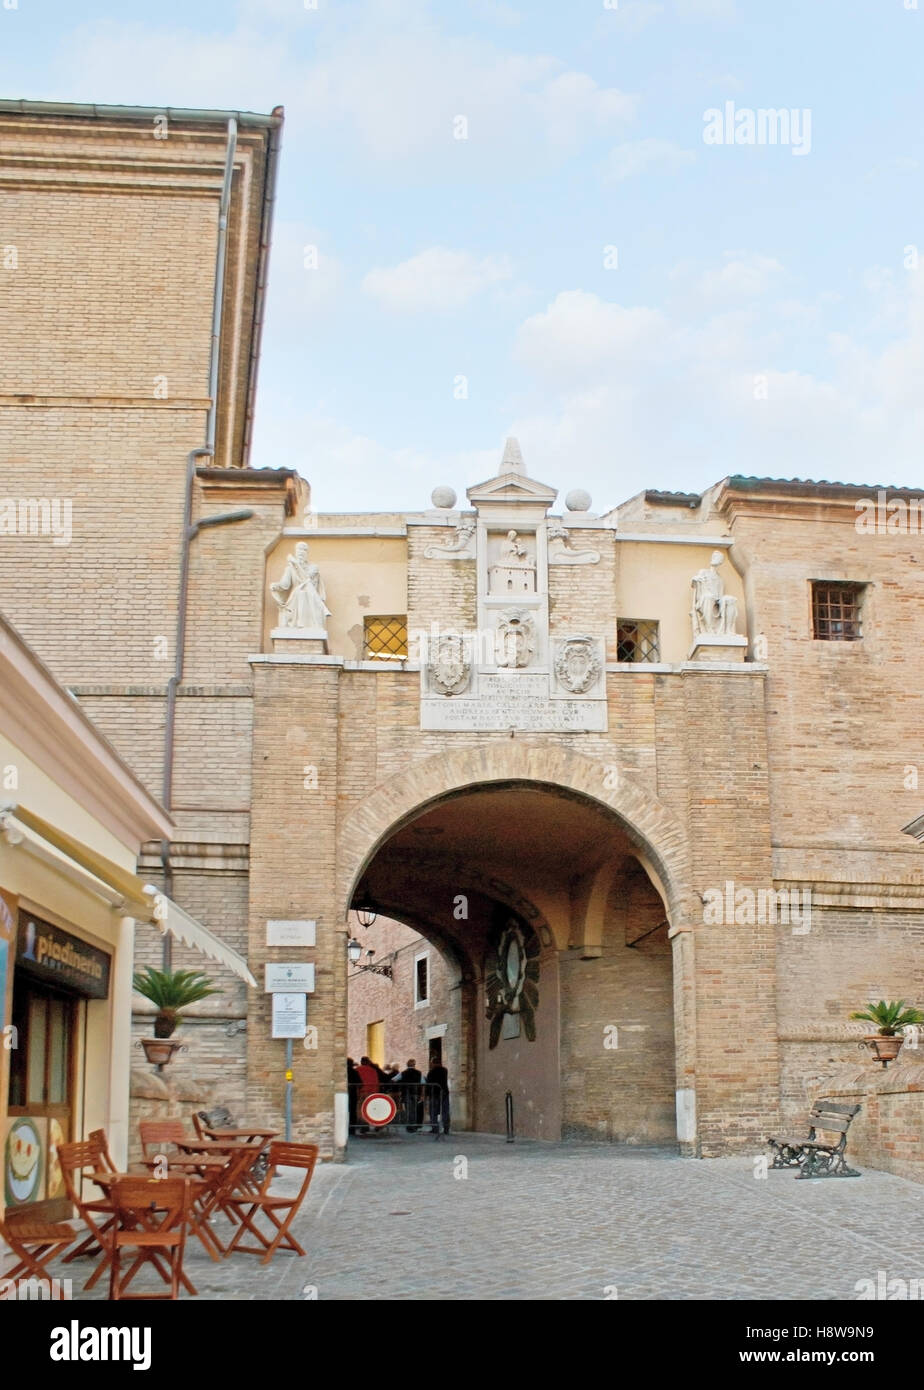 The brick Roman Gate (Porta Romana) decorated with white marble sculptures and reliefs and leads to the old town - Stock Image